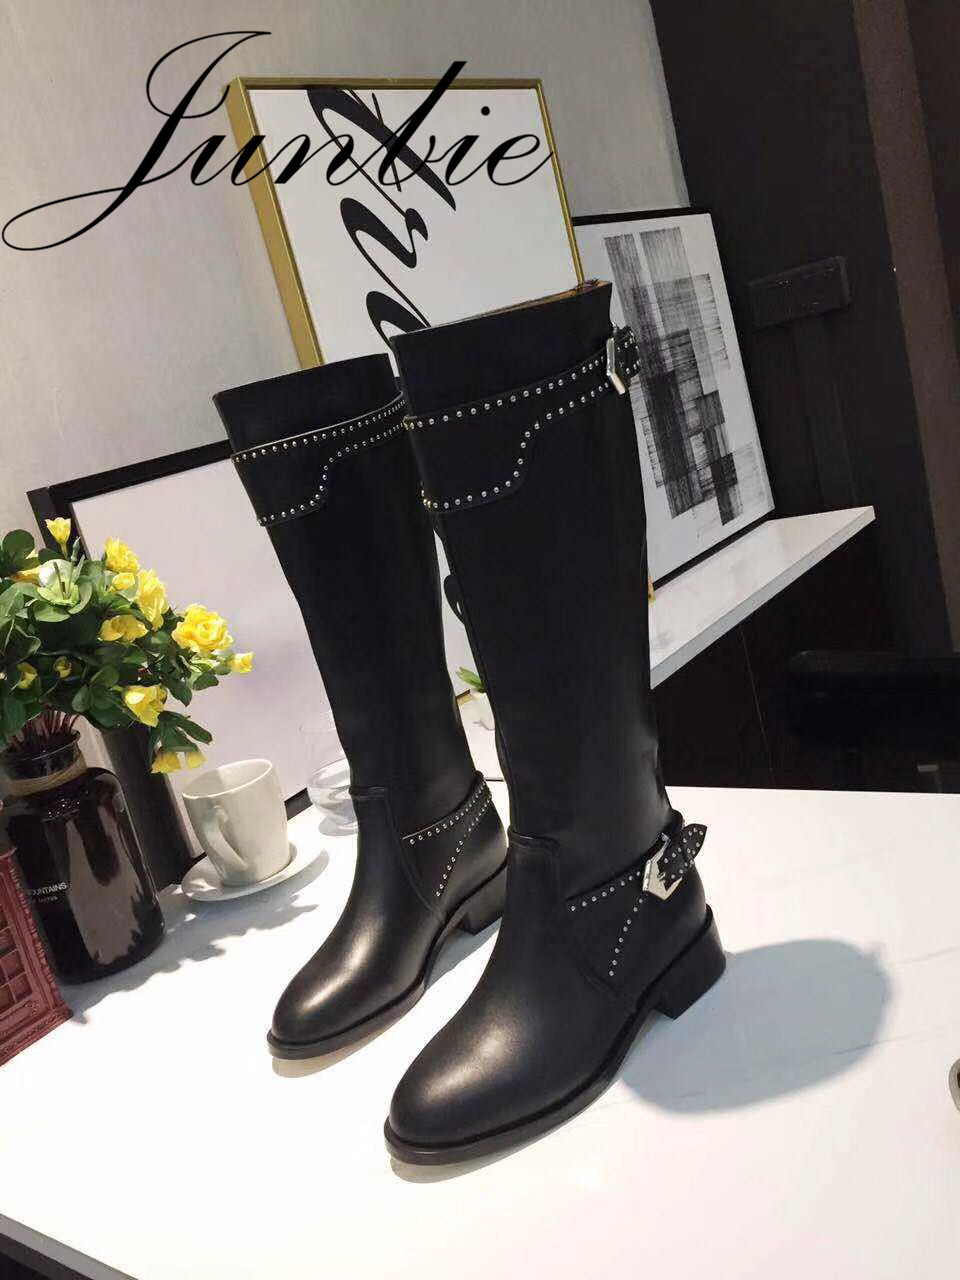 JUNBIE Black New Genuine Leather Metal Studded Women Boots Round Toe Low Heel Women Knee HIgh Autumn Winter Boots Shoes Women jawakye round toe silver chains studded ankle boots women flat heel genuine leather winter shoes motocycle boots for women